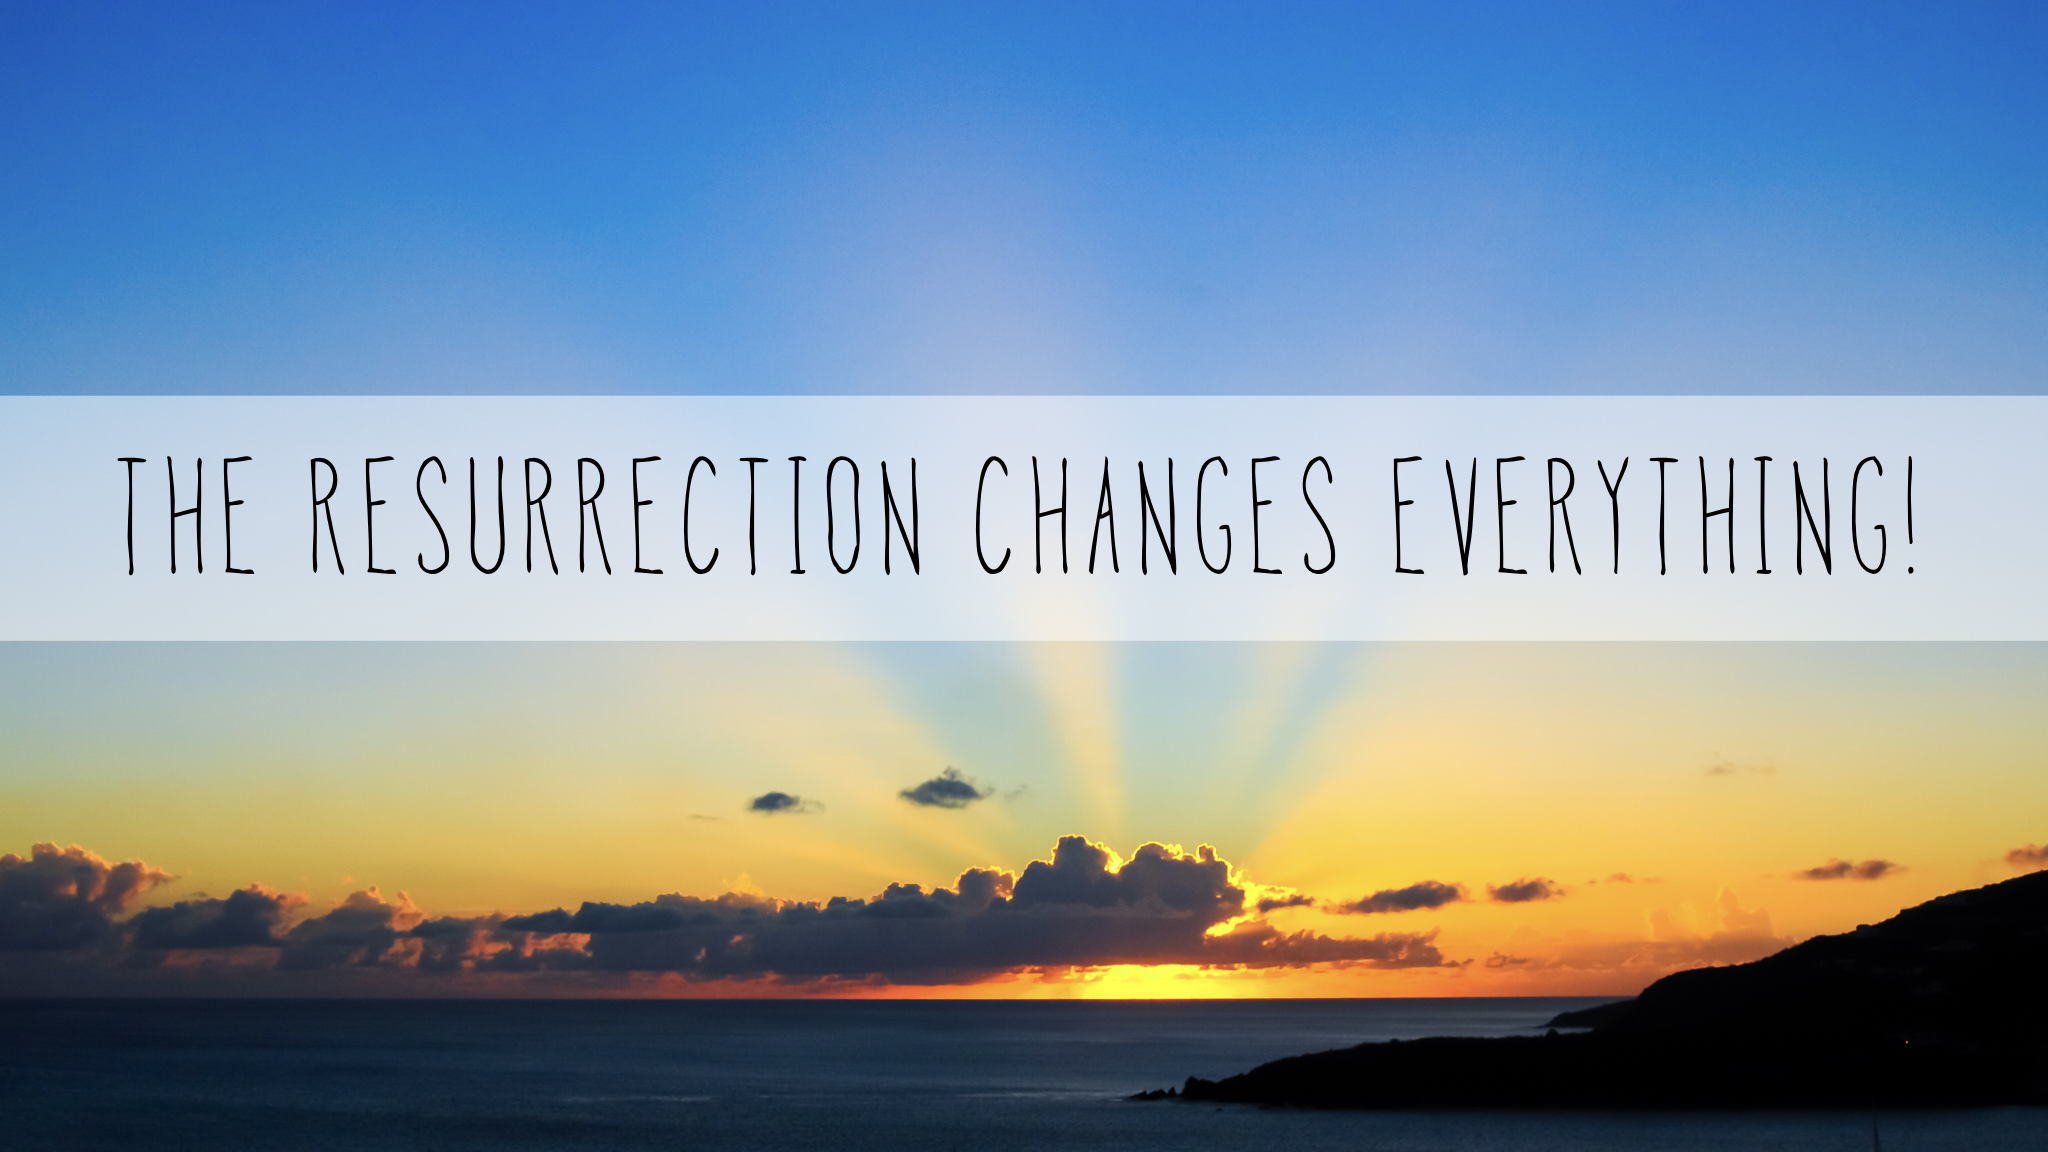 May 5, 2019 - The Resurrection Changes Everything : Paul(Rev. Victor Nelson)